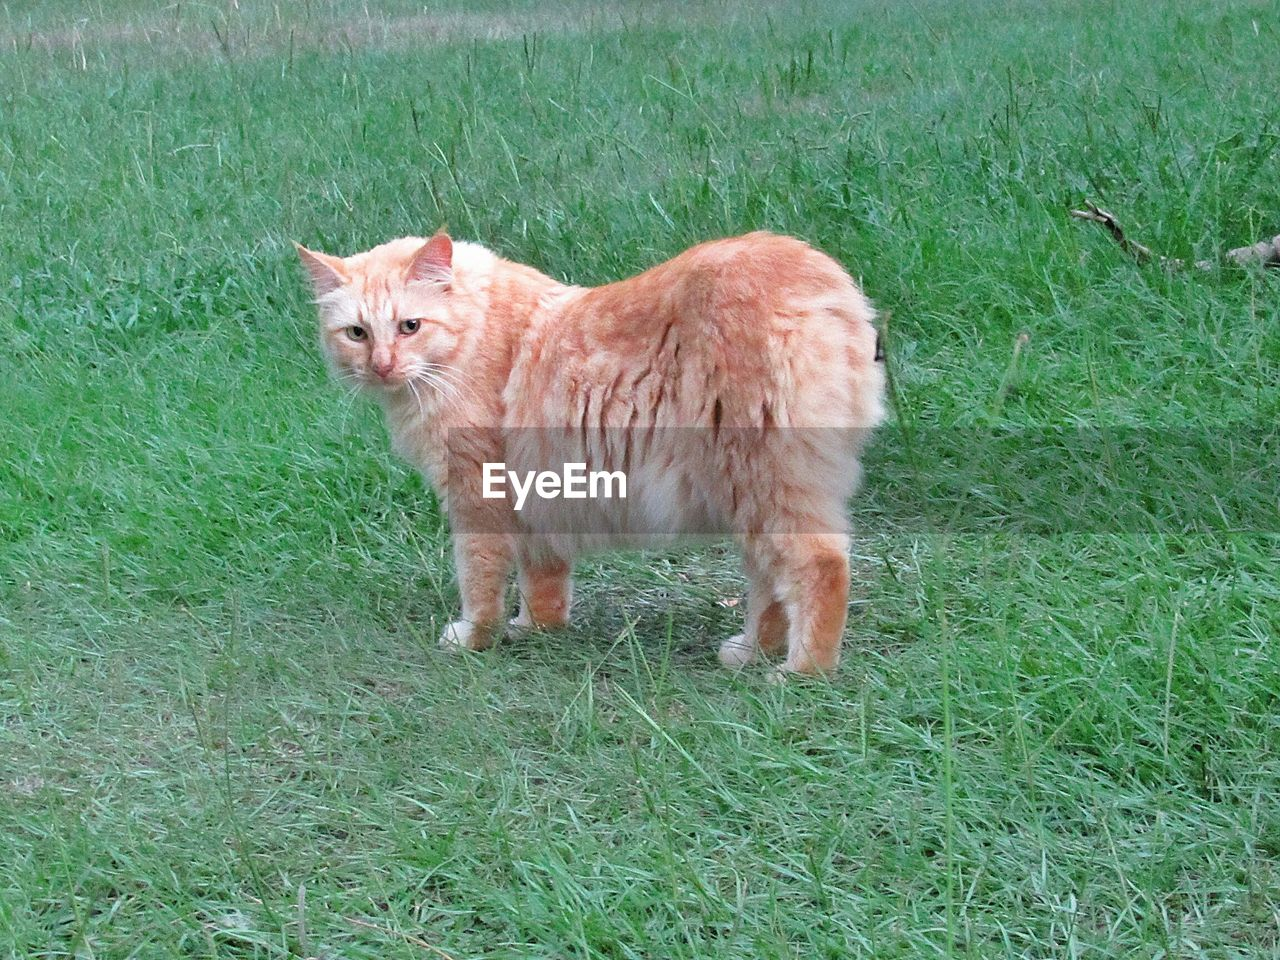 grass, mammal, domestic, pets, animal, domestic animals, animal themes, plant, one animal, field, feline, cat, land, vertebrate, domestic cat, nature, green color, day, no people, standing, whisker, ginger cat